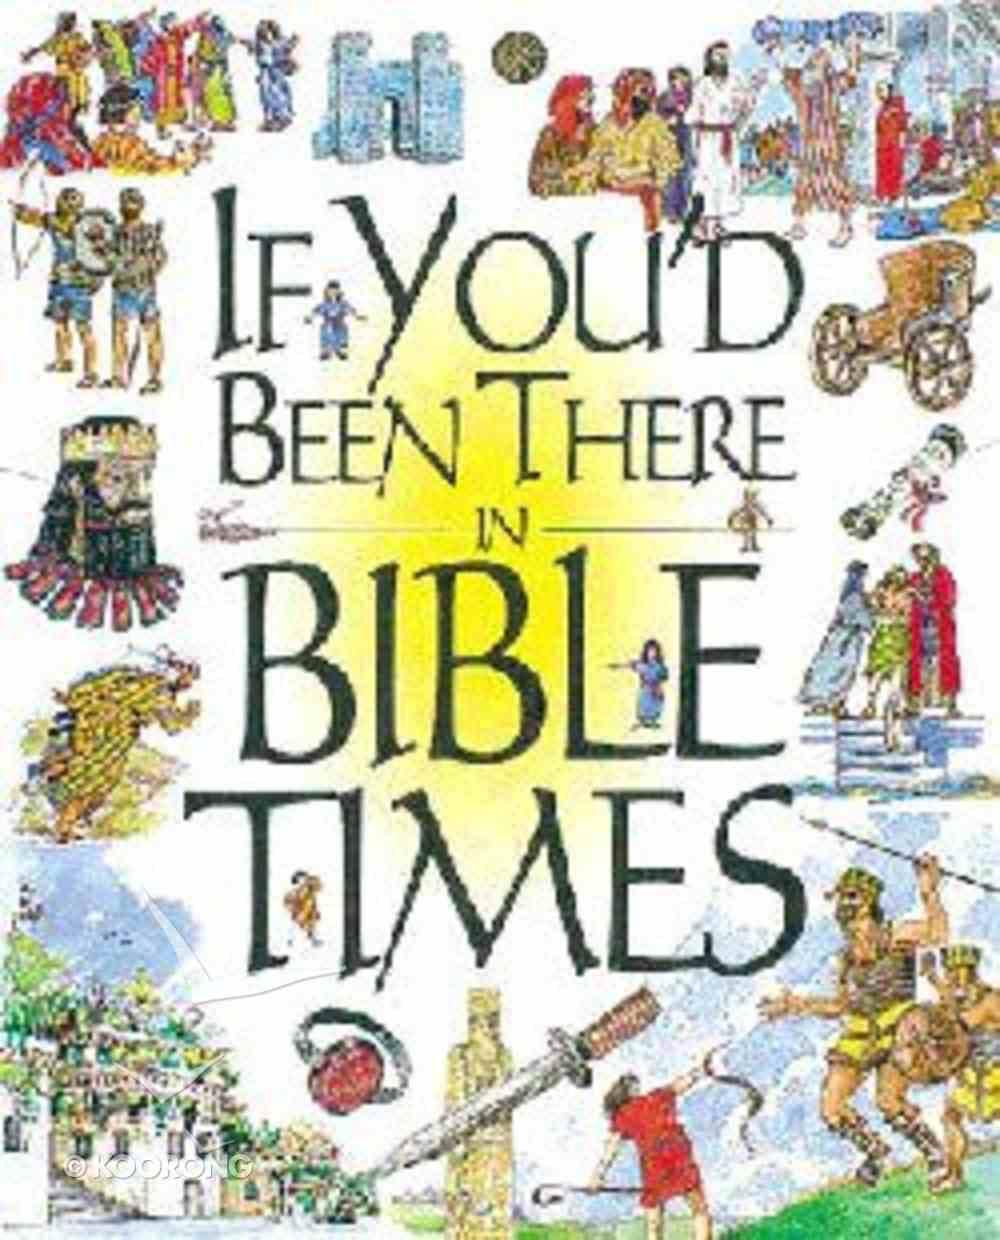 If You'd Been There in Bible Times Hardback